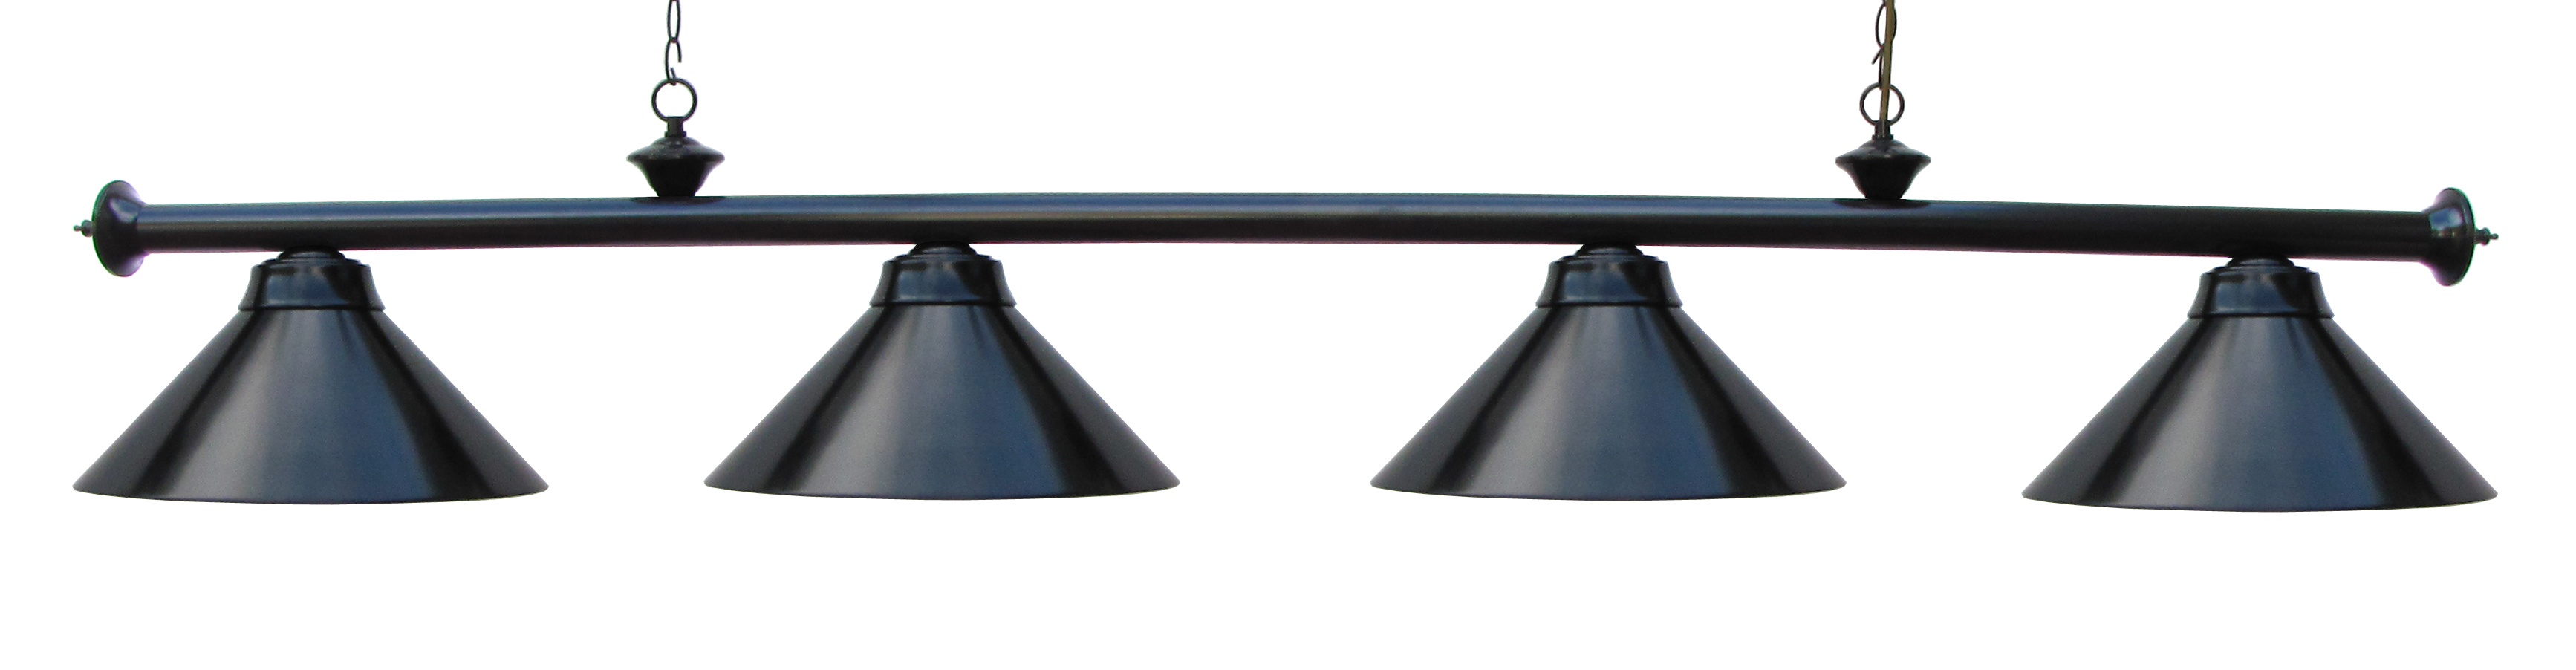 "72"" Black Finish Pool Table Light"